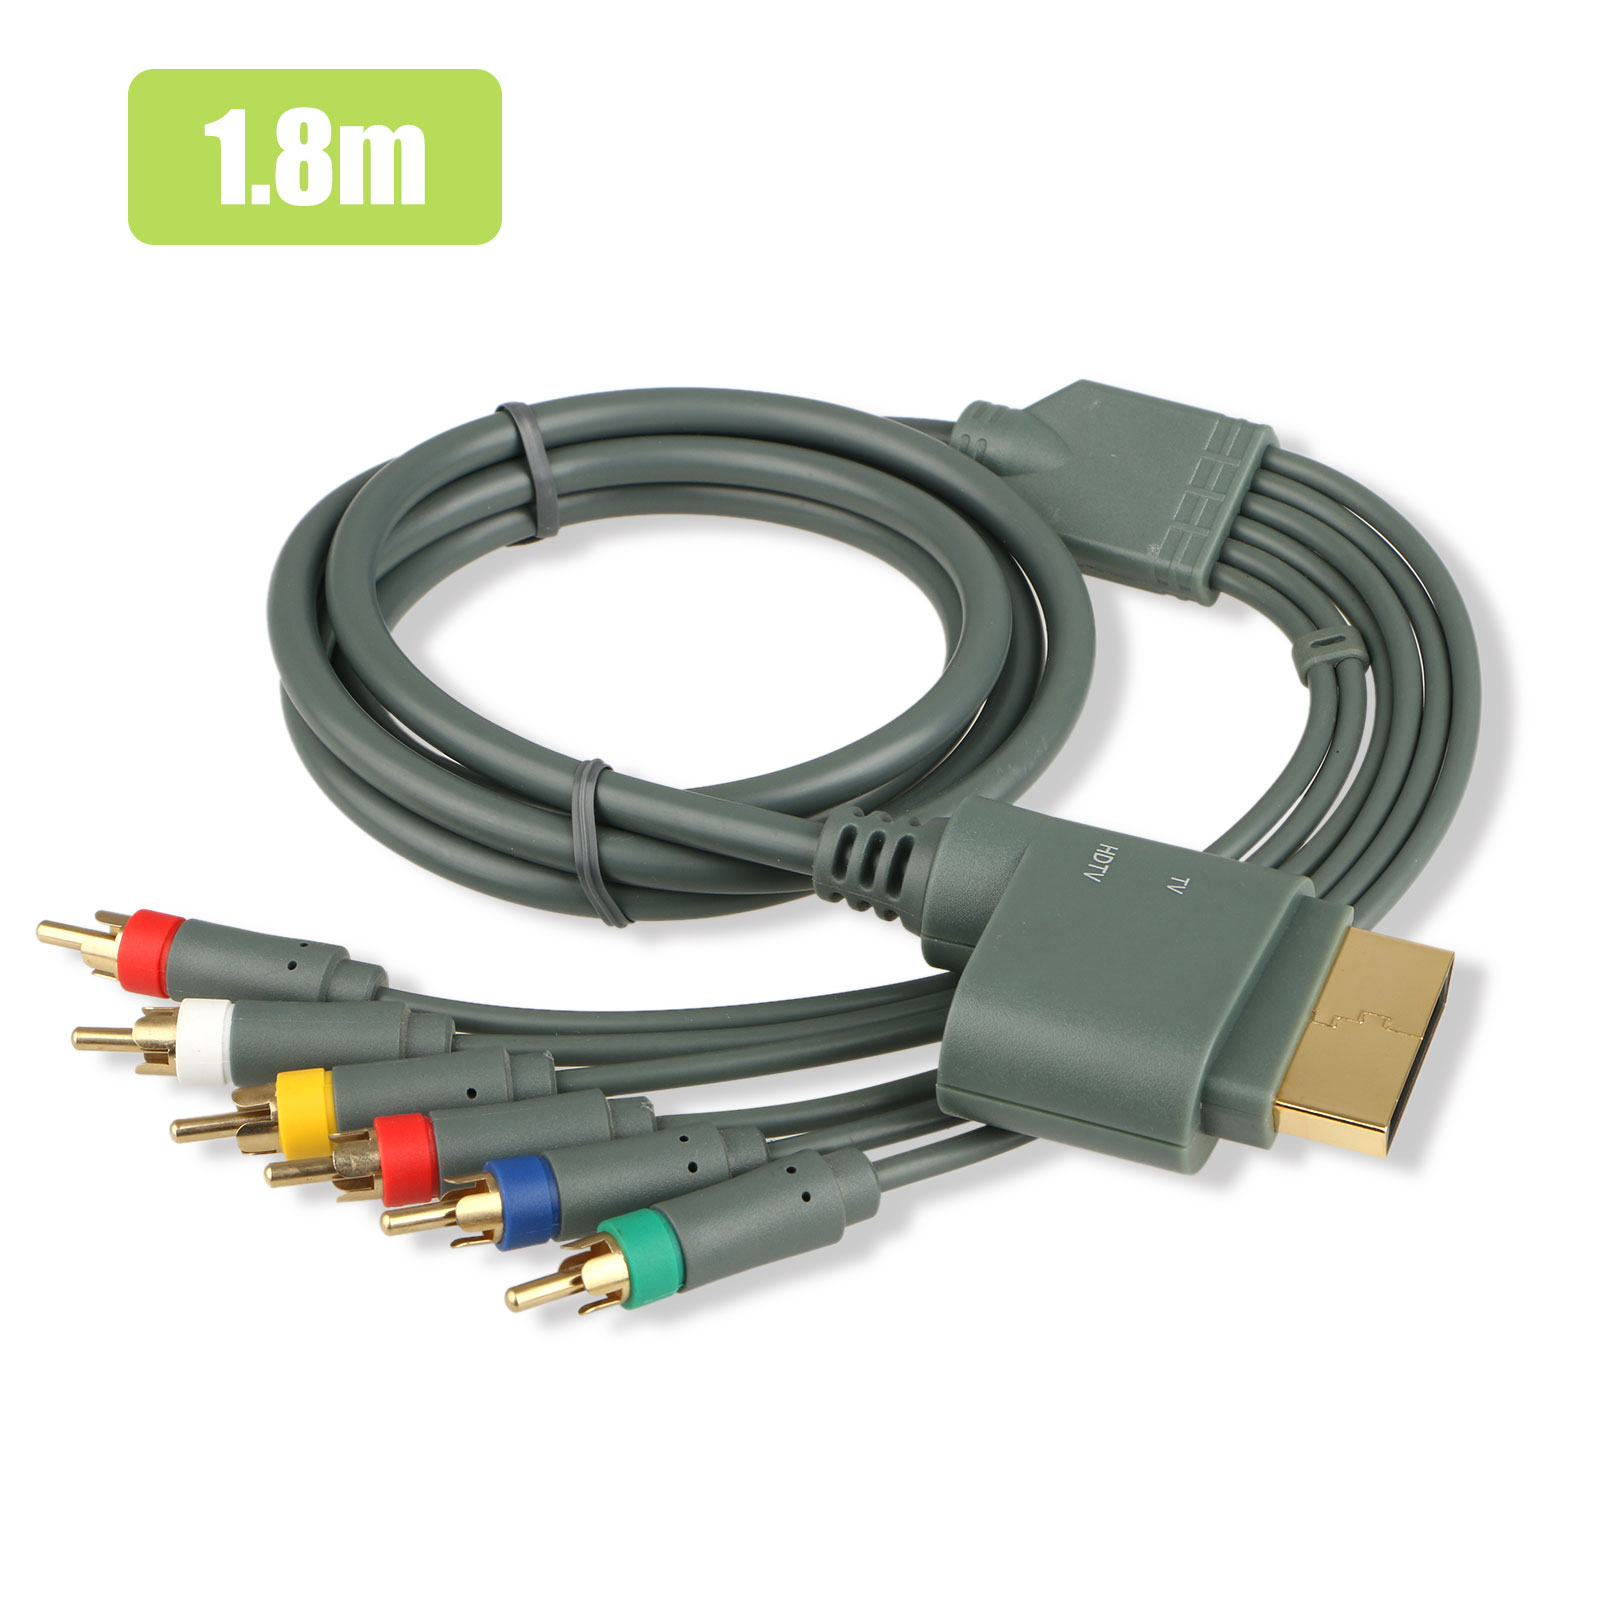 EEEKit TV Component Composite Audio Video Cable HDTV/EDTV  AV Cord Color Code Connector with Flexible PVC Jacket Support High Definition Video Switch for Microsoft Xbox 360